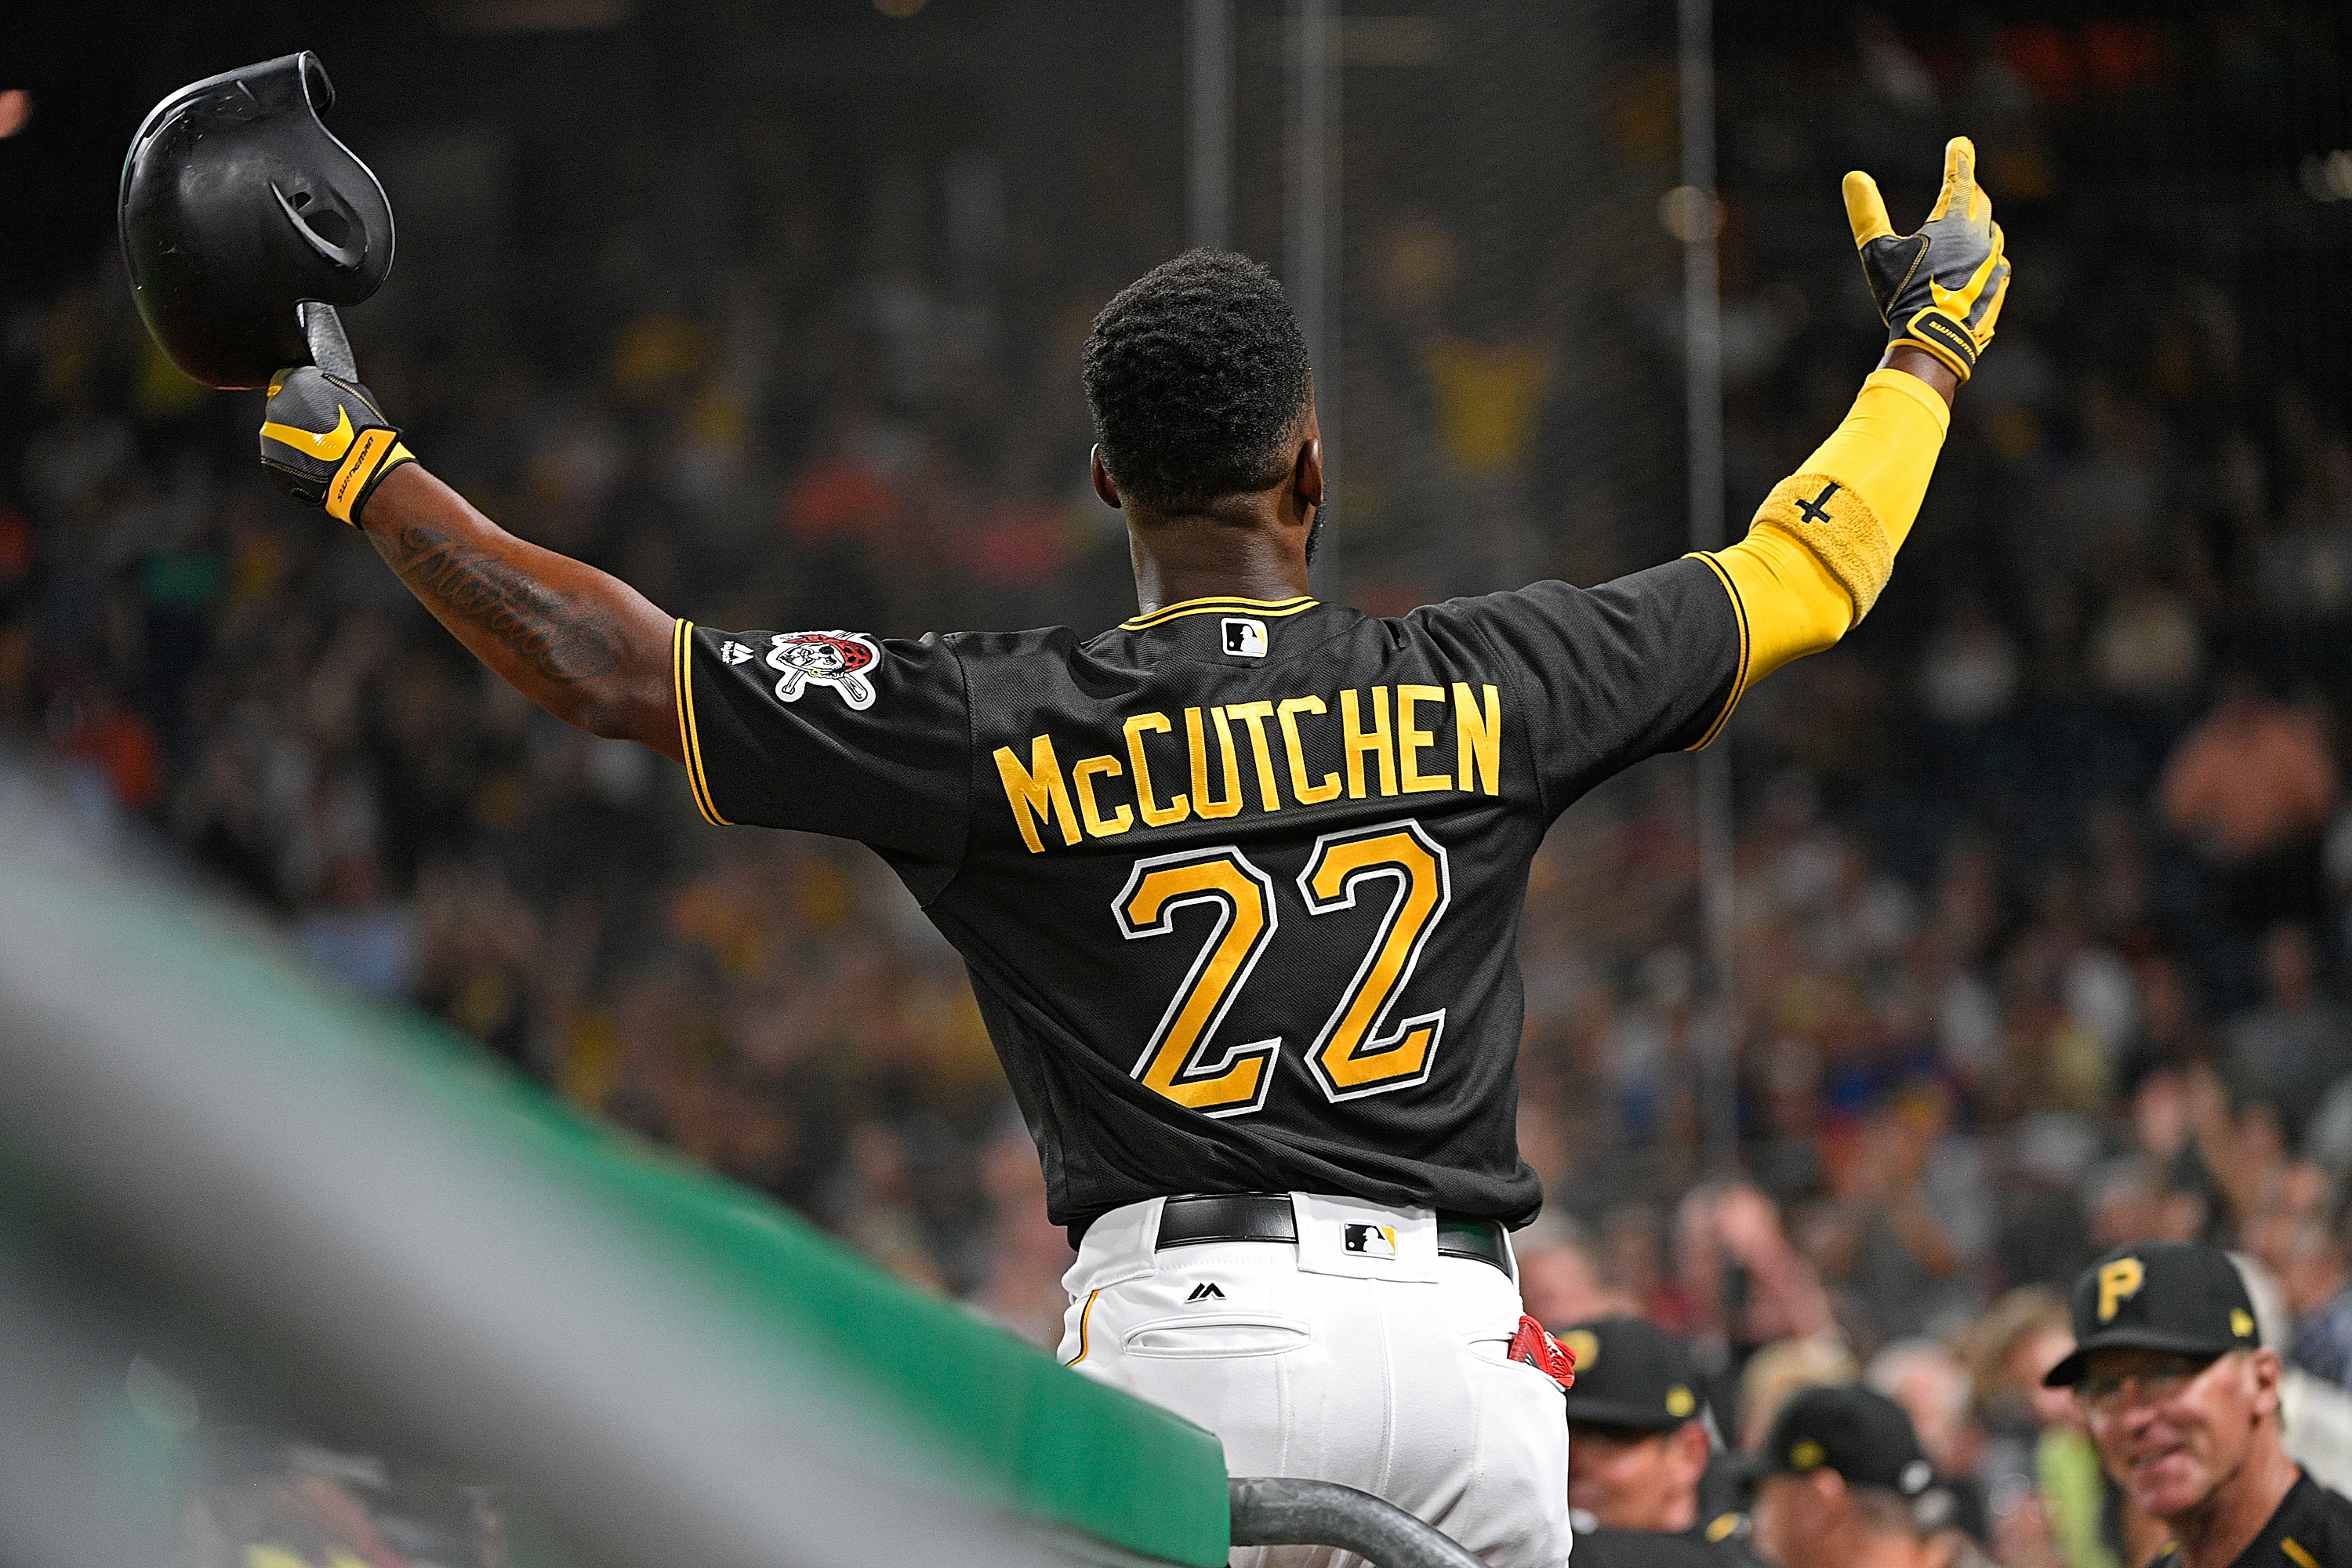 Pittsburgh Pirates: Andrew McCutchen and the West Coast?